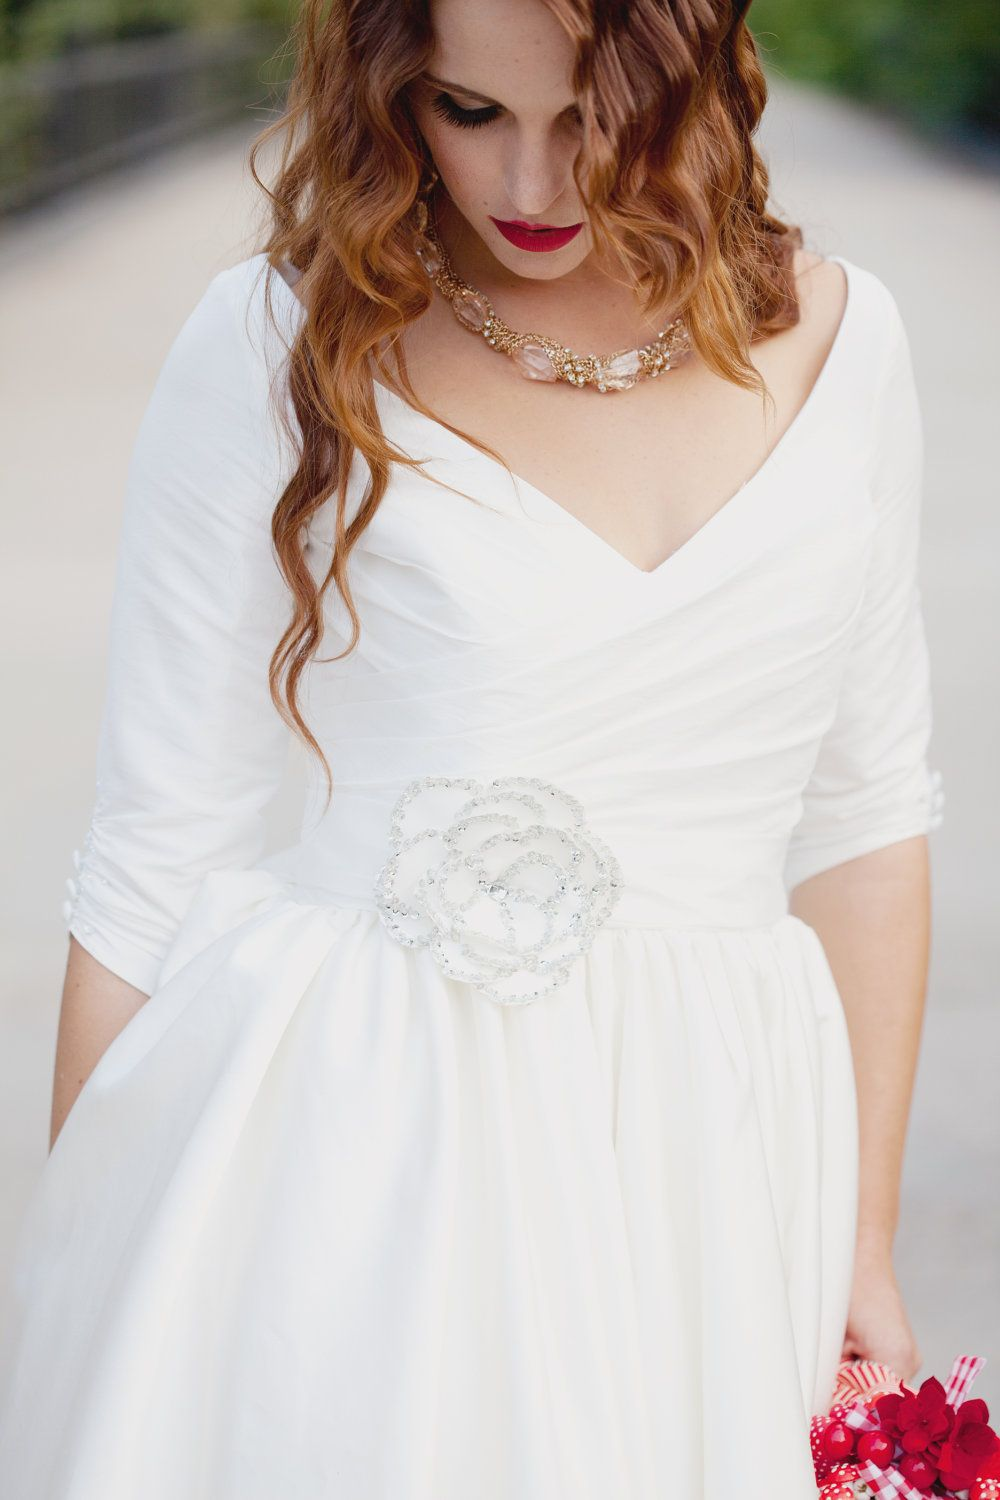 Short wedding dress with sleeves and pockets janie jones one day